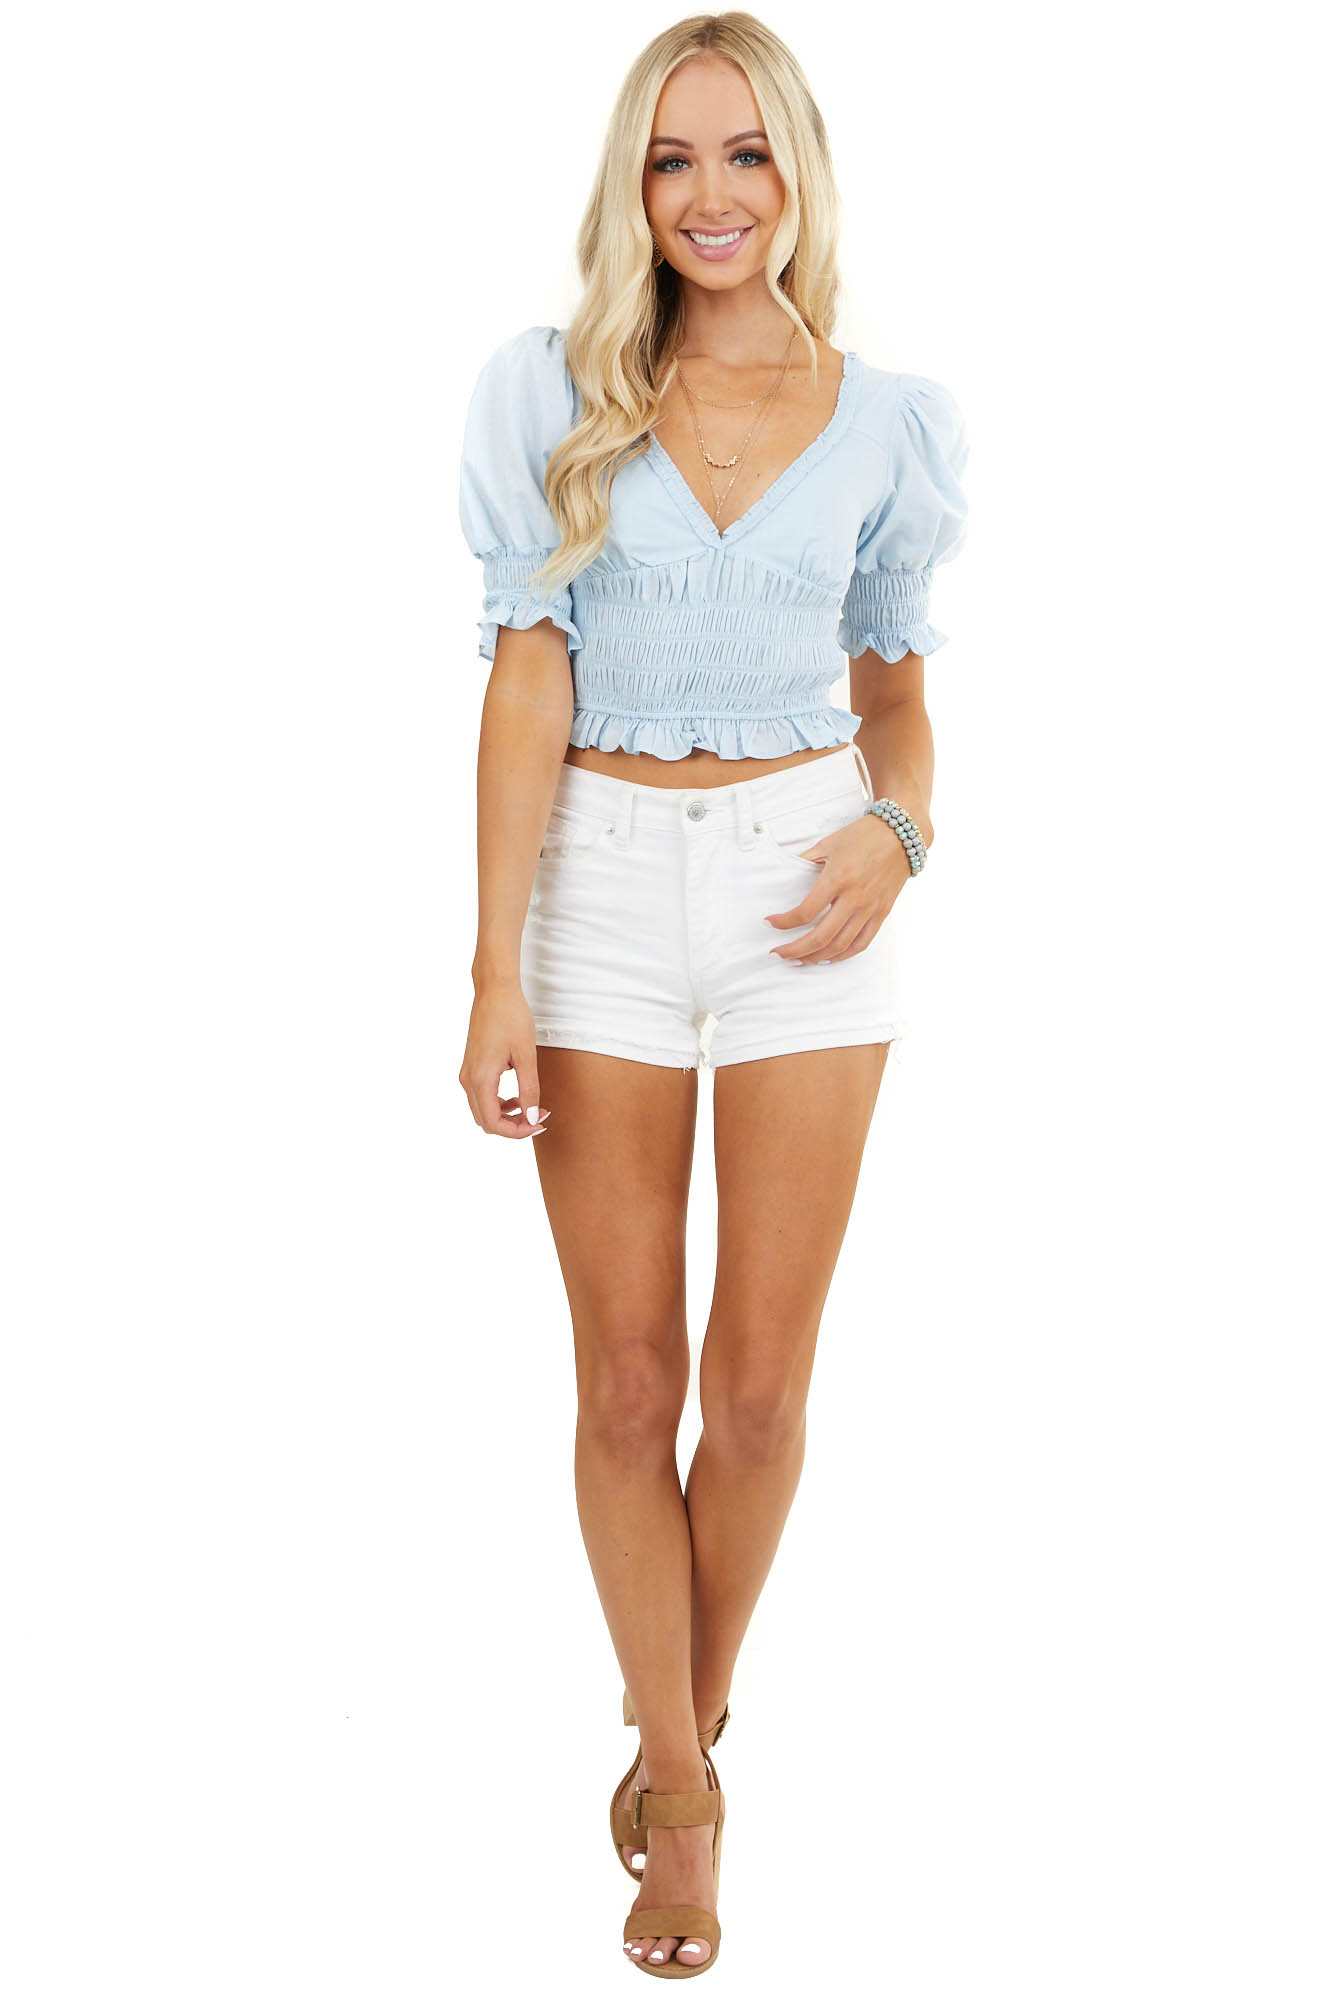 Baby Blue Smocked Short Puffy Sleeve Crop Top with Open Back